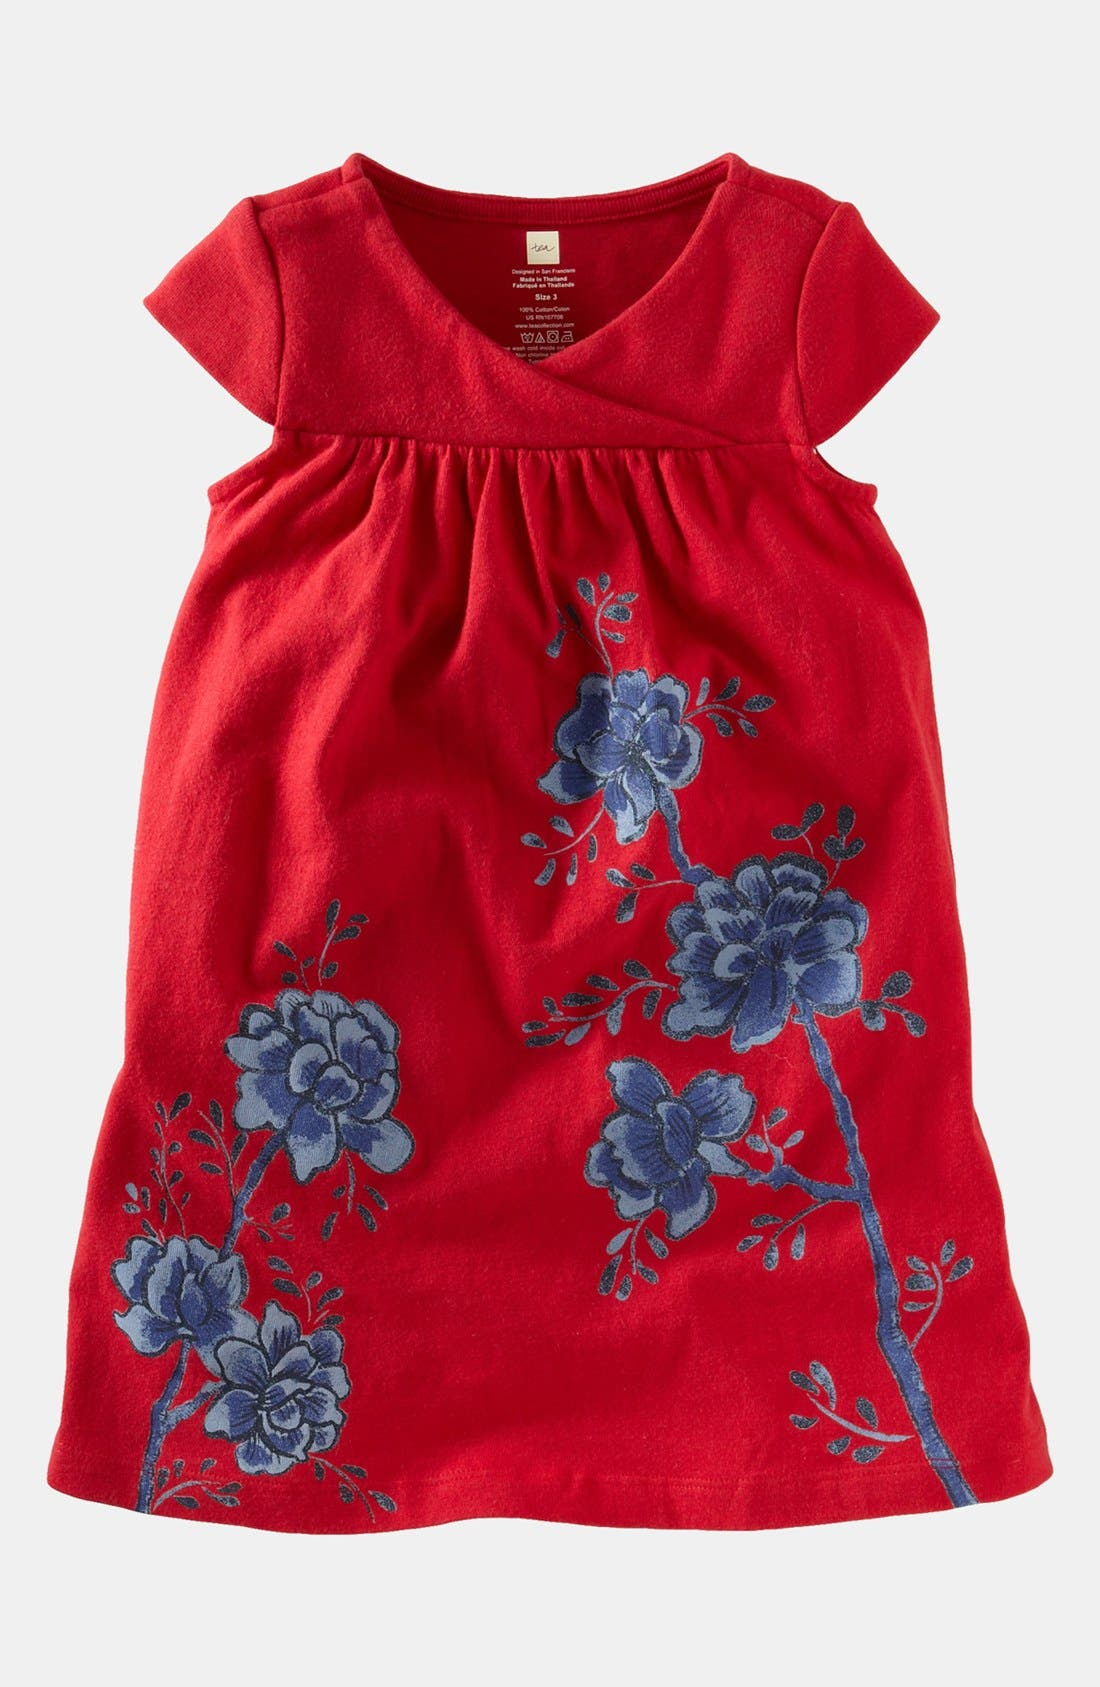 Main Image - Tea Collection 'Painted Pottery' Dress (Toddler Girls, Little Girls & Big Girls)